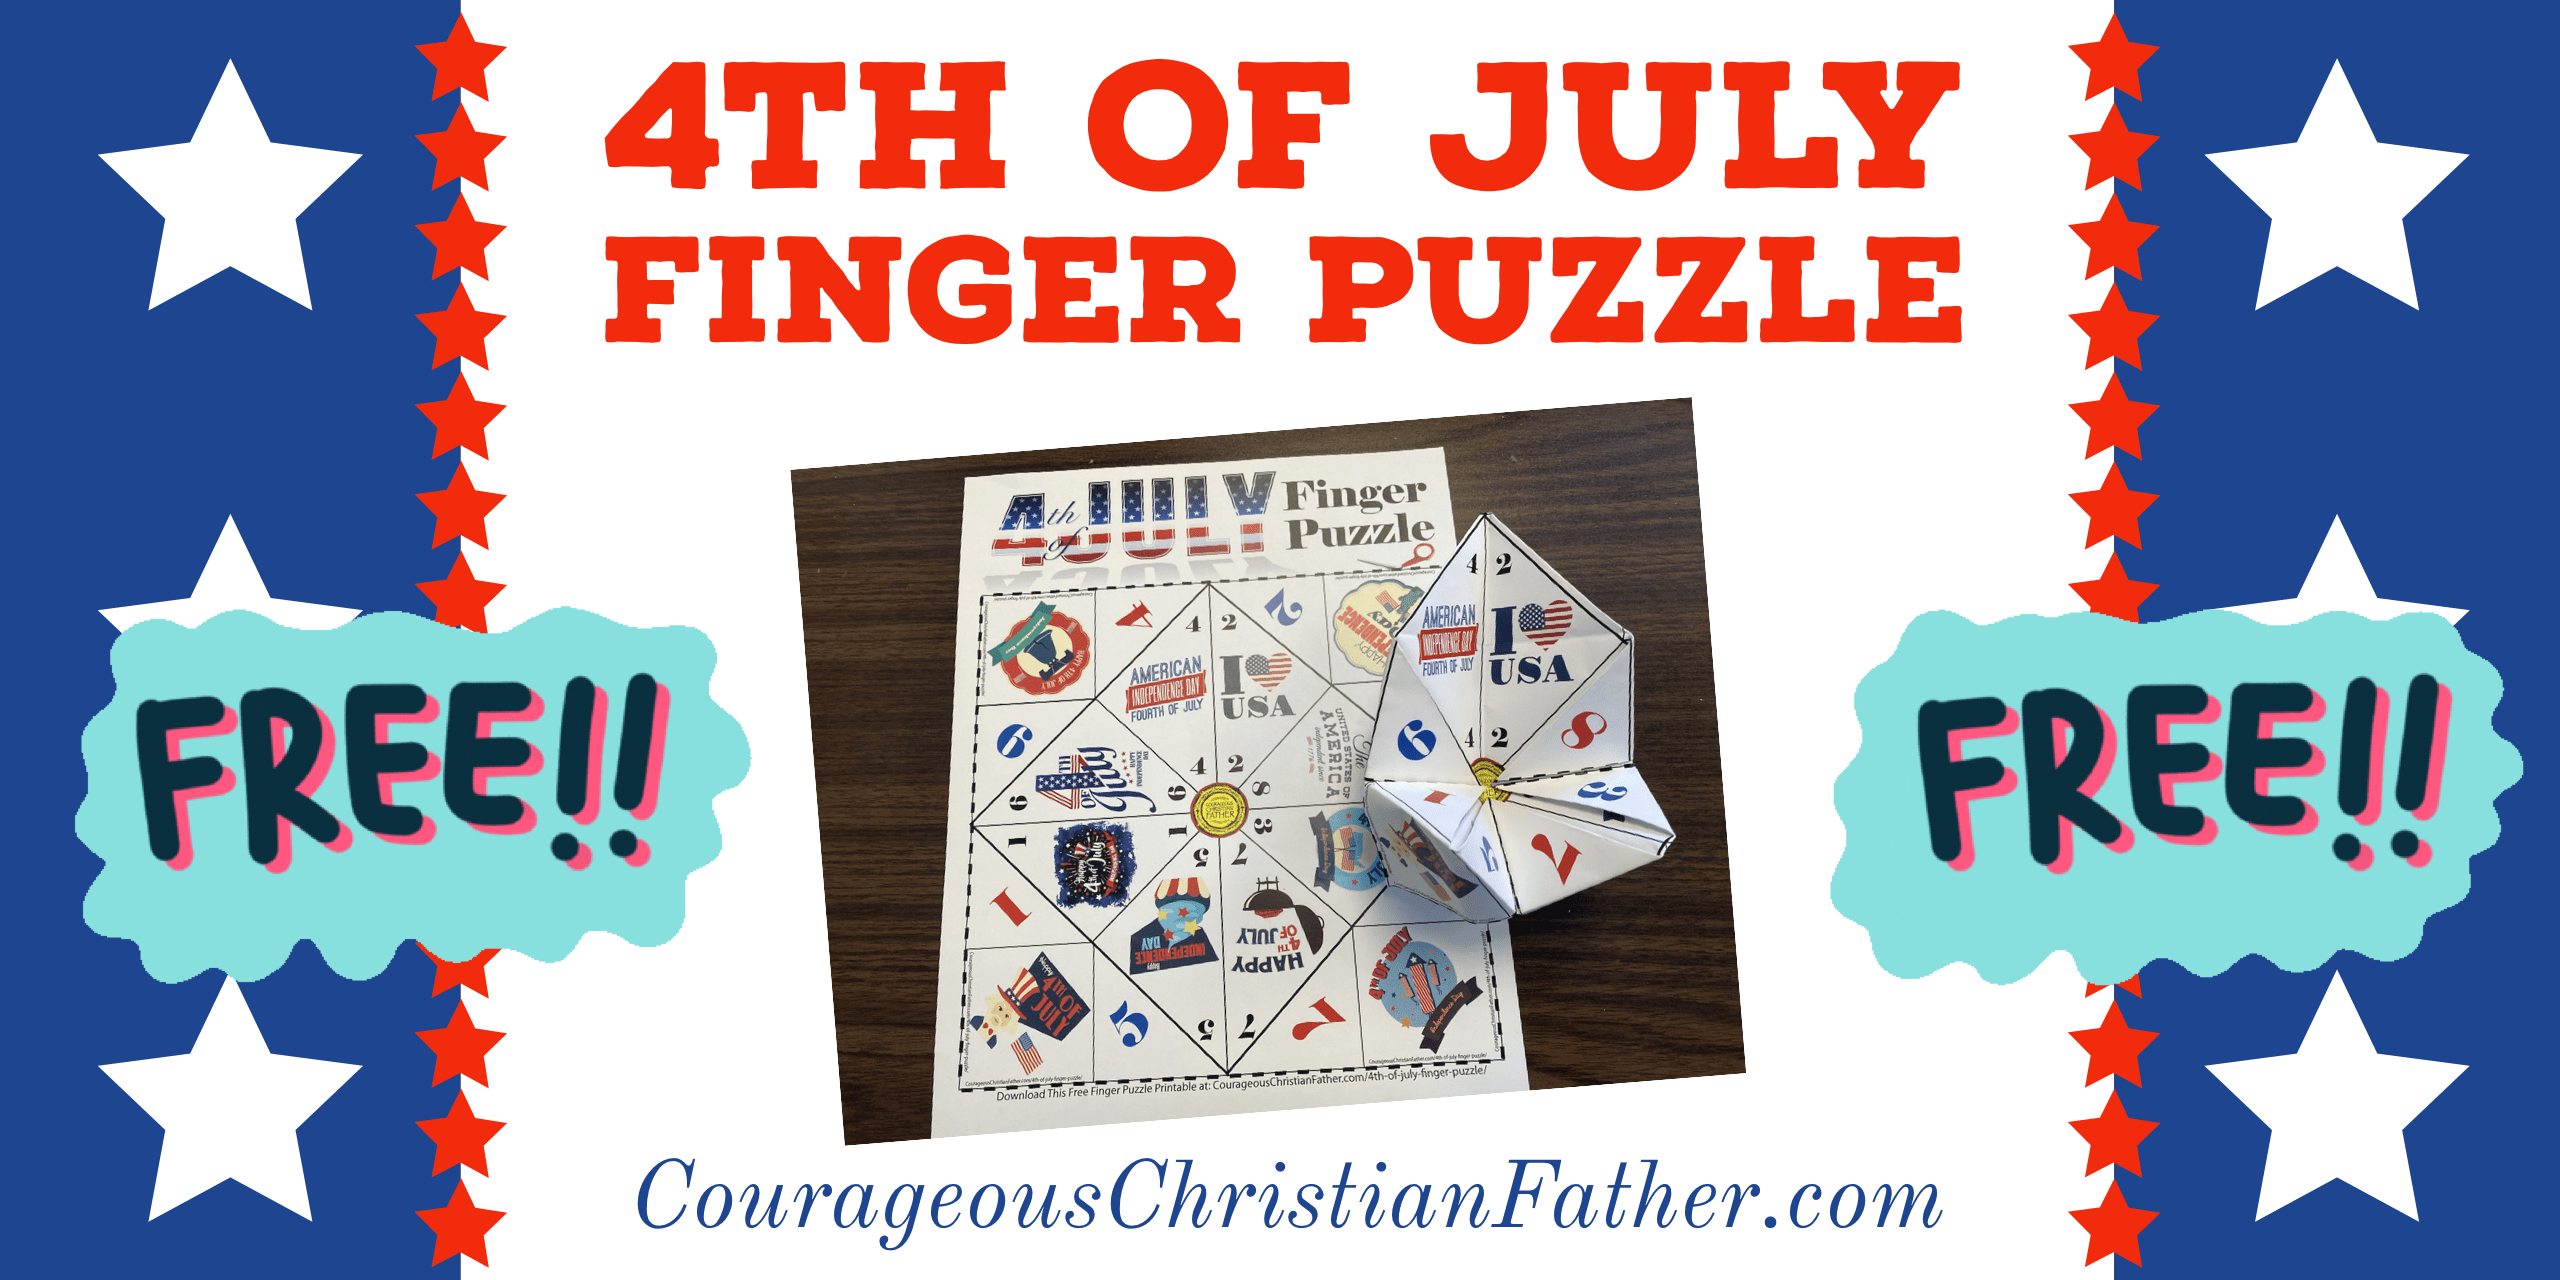 4th of July Finger Puzzle Printable - Here is a fun free finger puzzle printable for Independence Day (4th of July). #4thofJuly #IndependenceDay